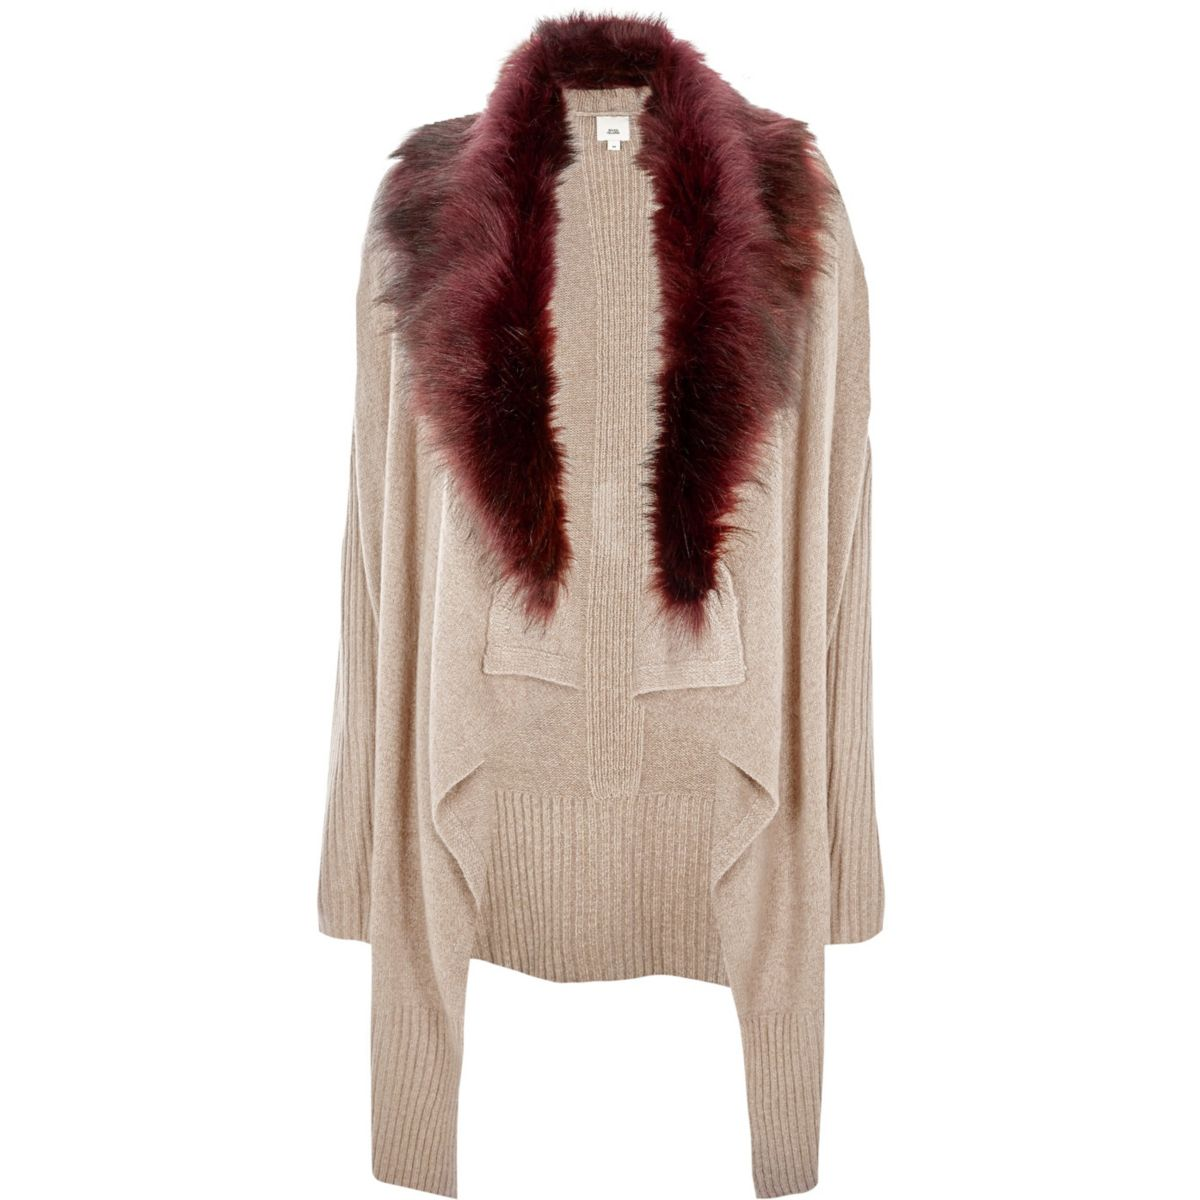 Beige faux fur collar waterfall cardigan - Knitwear - Sale - women